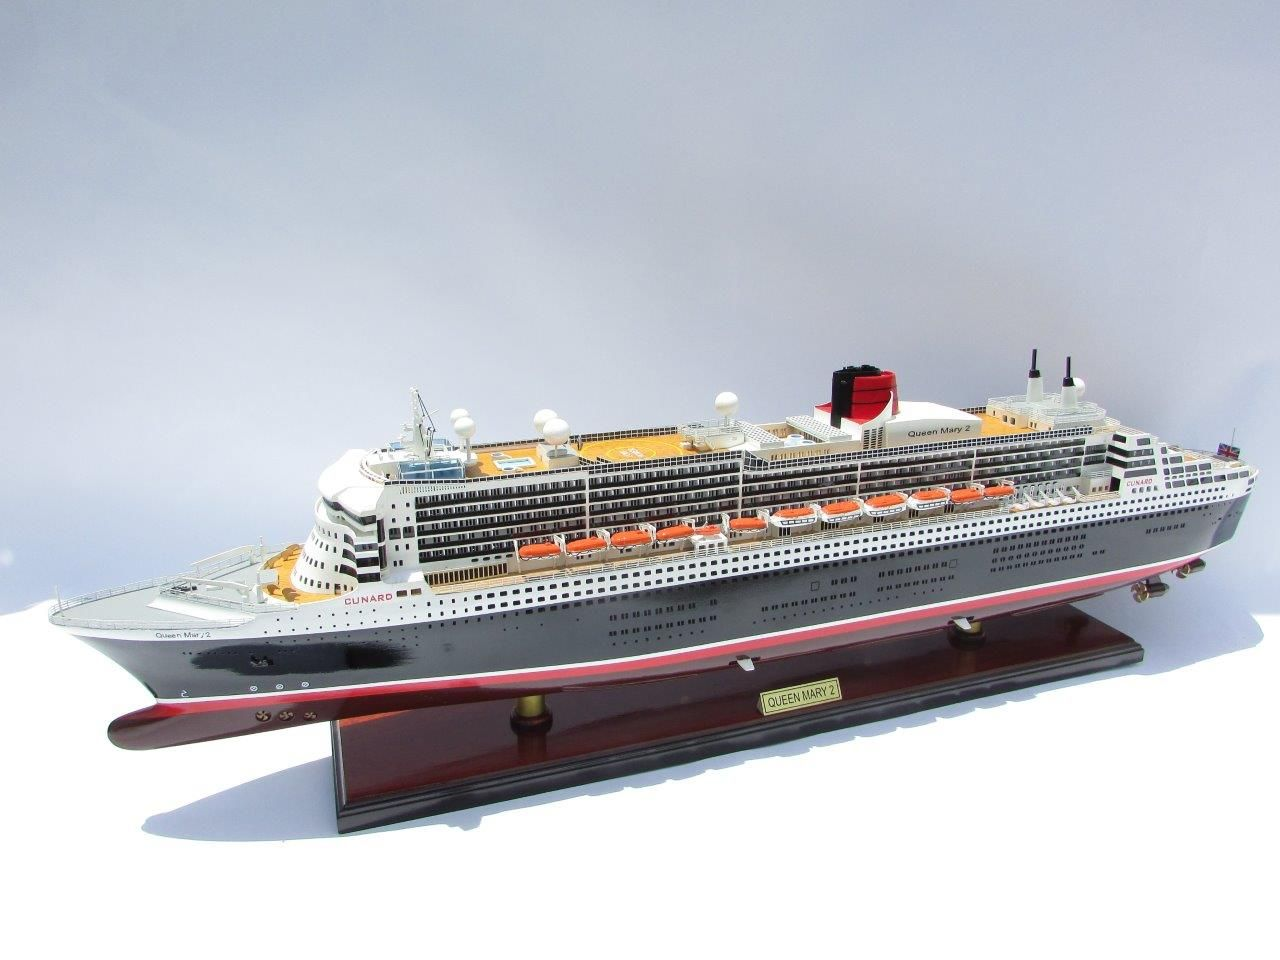 2090-12407-Queen-Mary-2-Wooden-Model-Ship